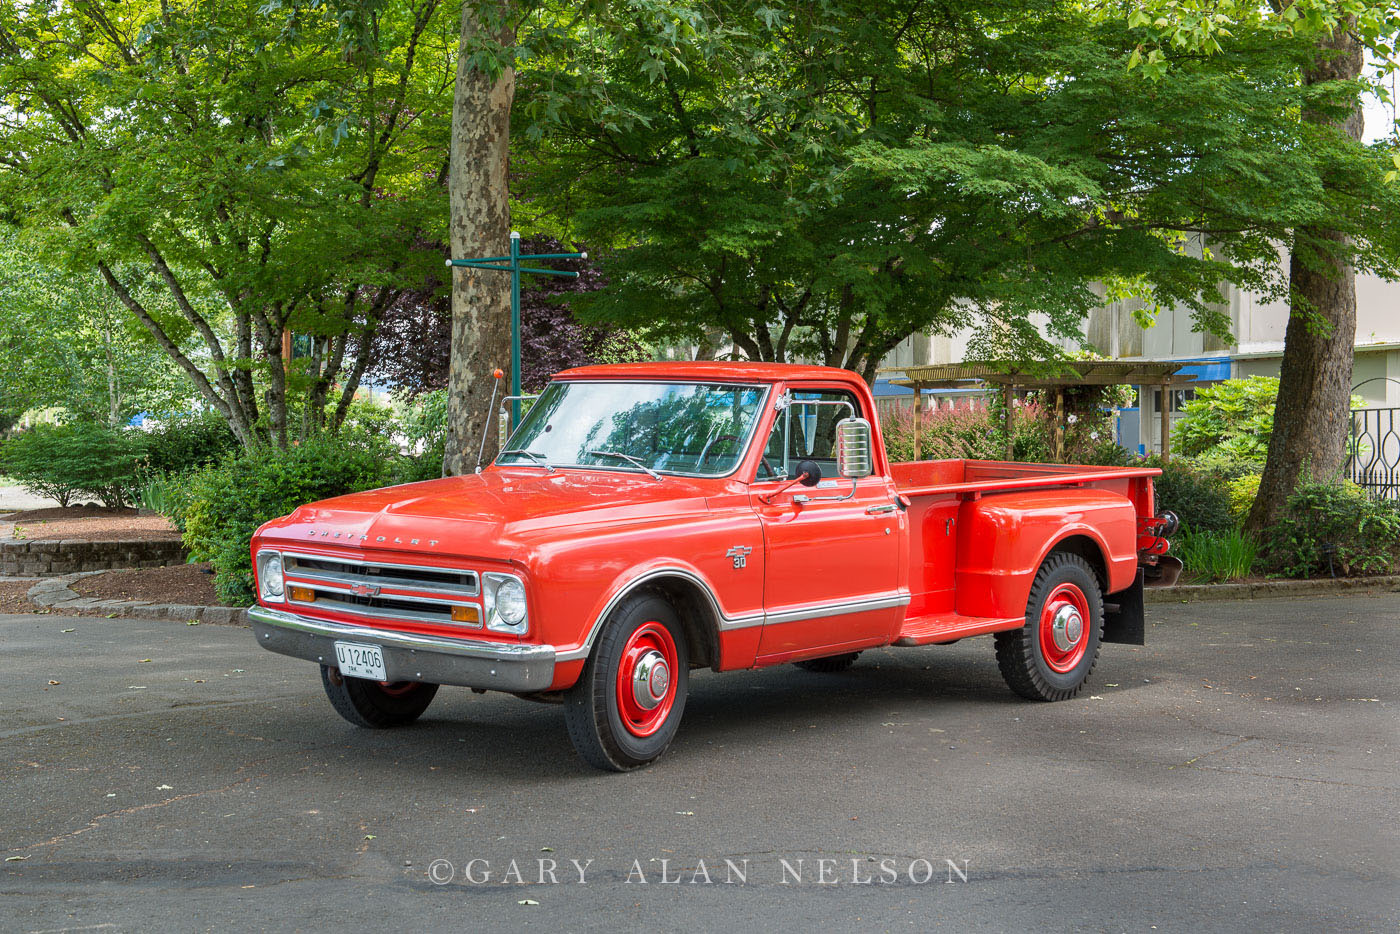 1967 Chevrolet C-30 One-Ton long bed 9-foot box